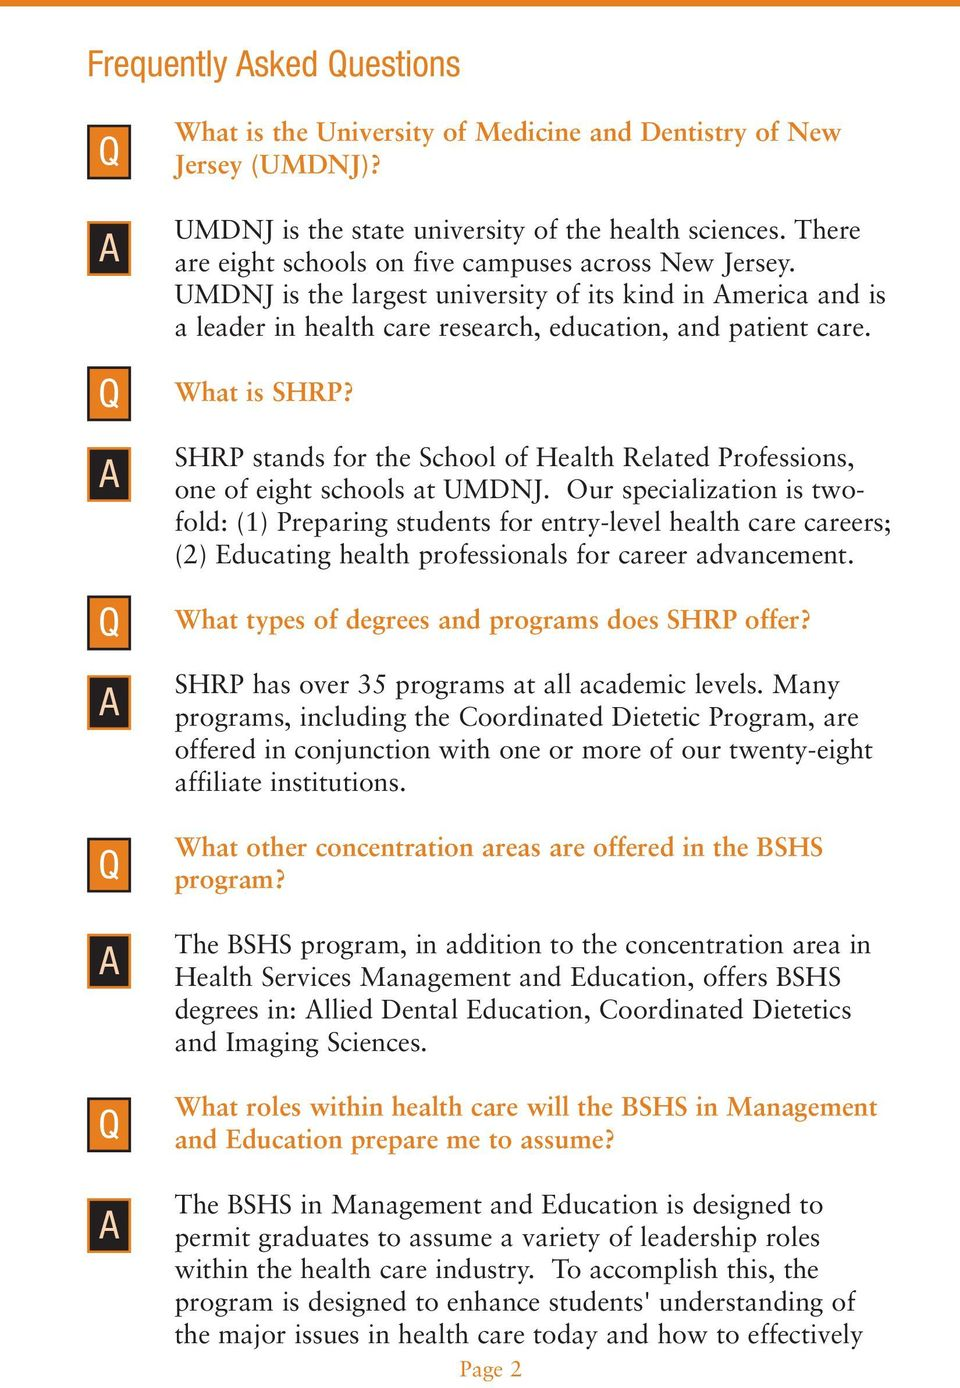 SHRP stands for the School of Health Related Professions, one of eight schools at UMDNJ.